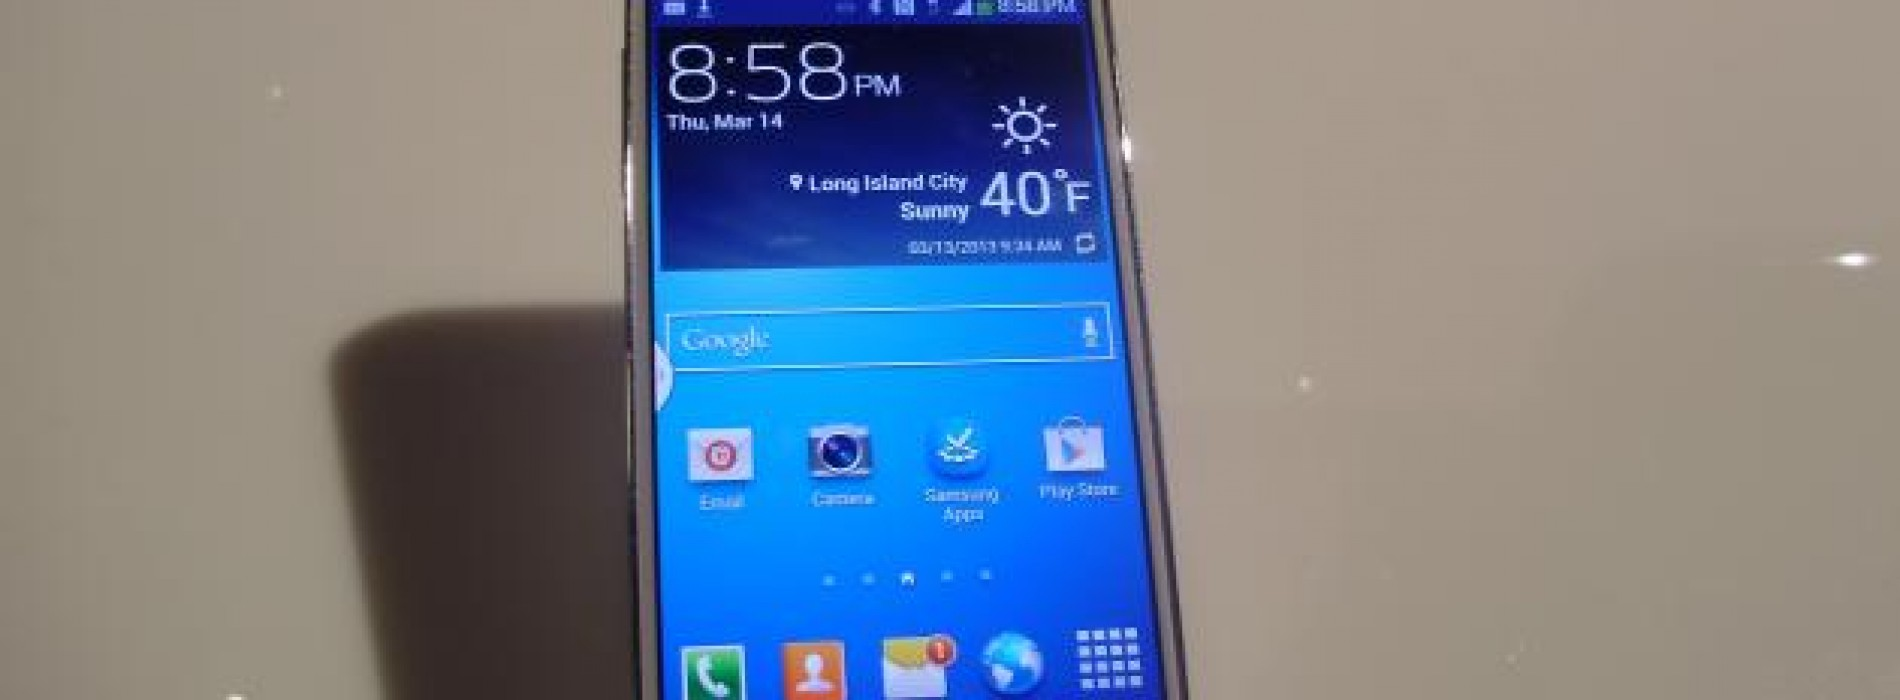 T-mobile Galaxy S4 now available online